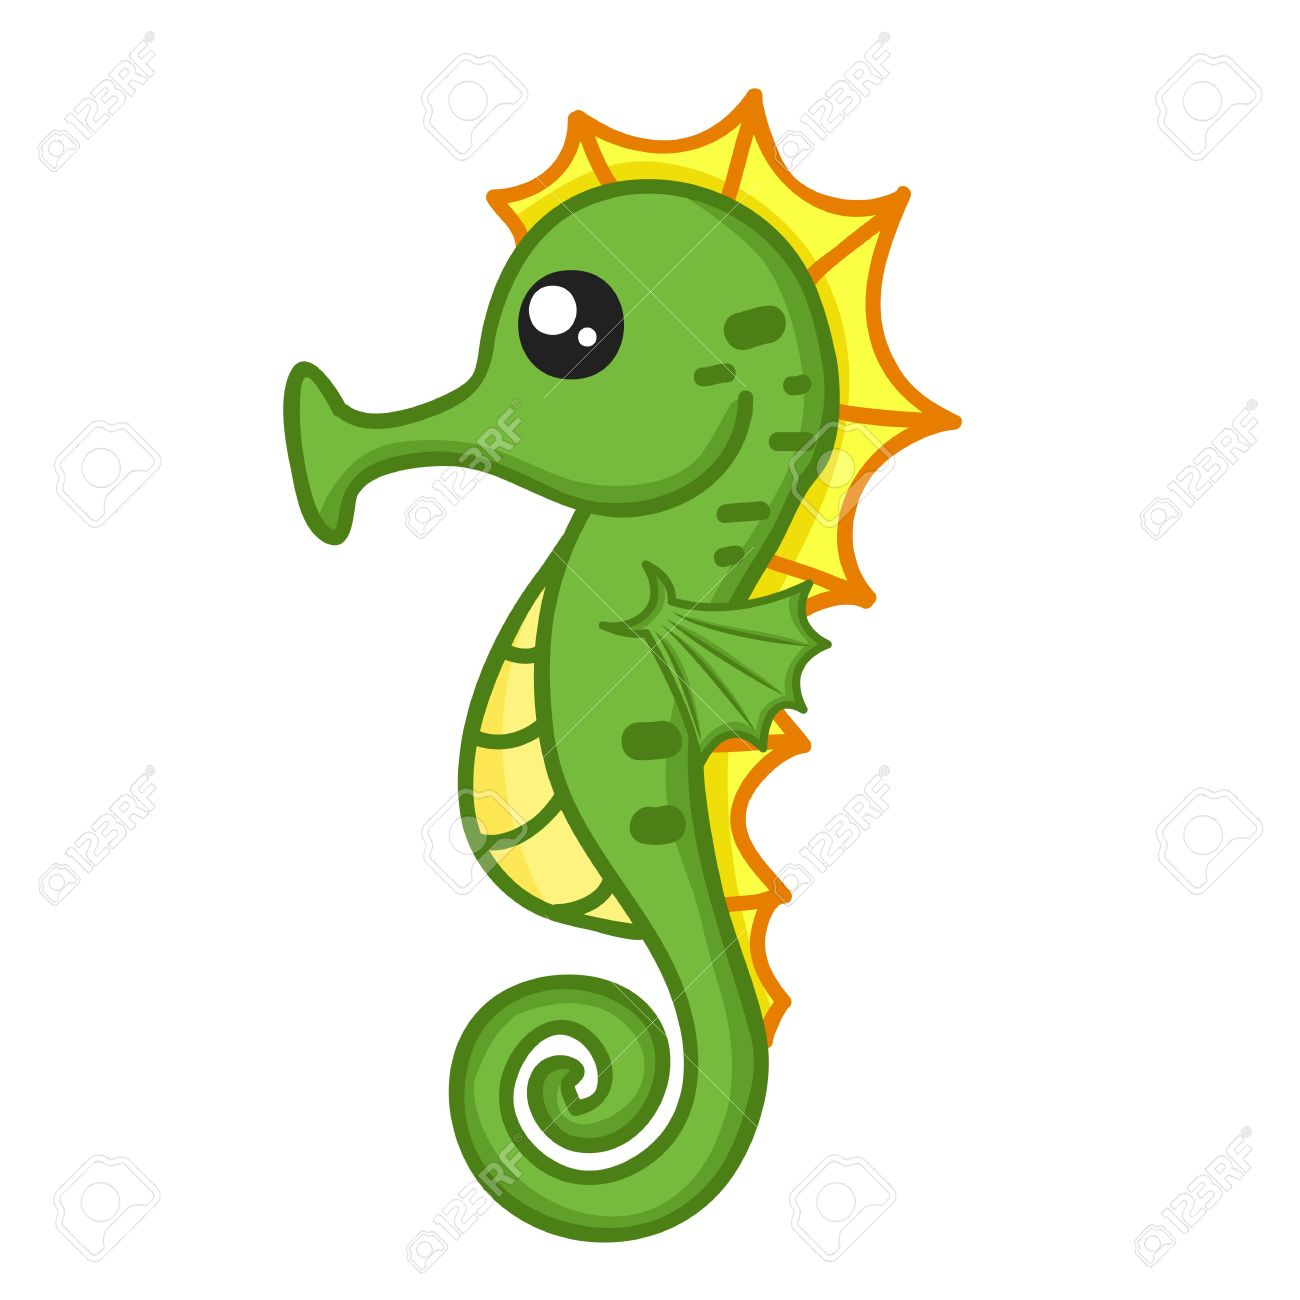 Cute Seahorse Drawing at GetDrawings.com   Free for personal use ...